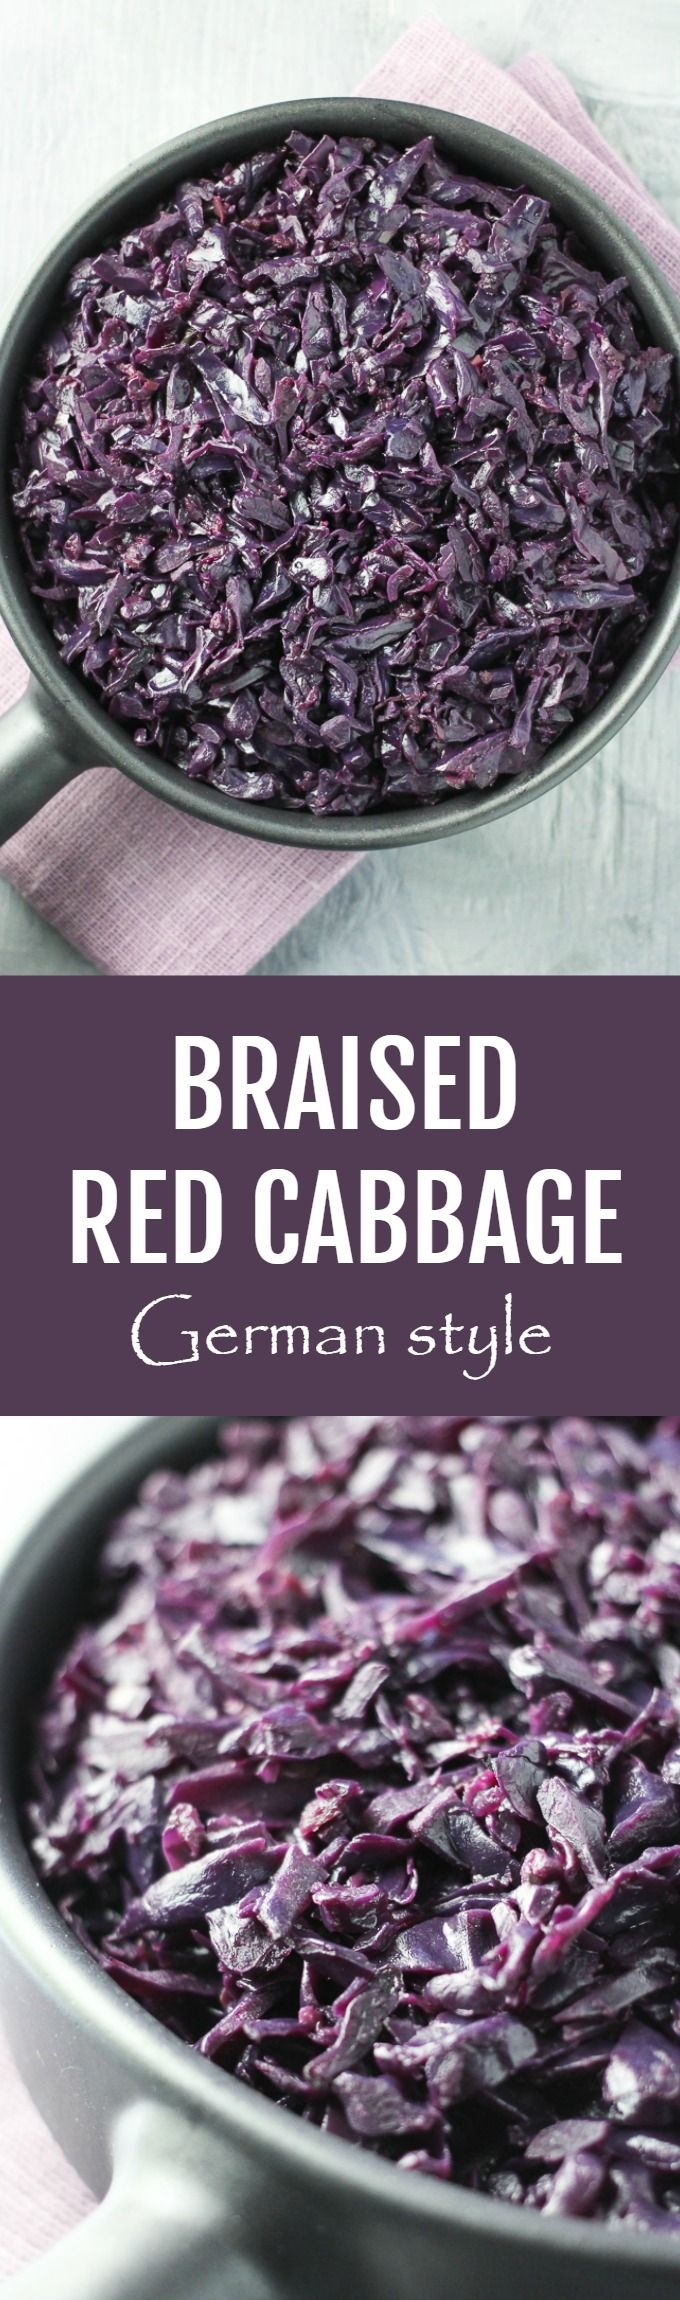 This braised German Red Cabbage is very easy to make. Serve it as a side dish for meat, fish, fried or poached eggs, or as a part of your veggie-grain bowl. #cabbage #vegan #cleaneating #recipe #plantbased #healthy #realfood